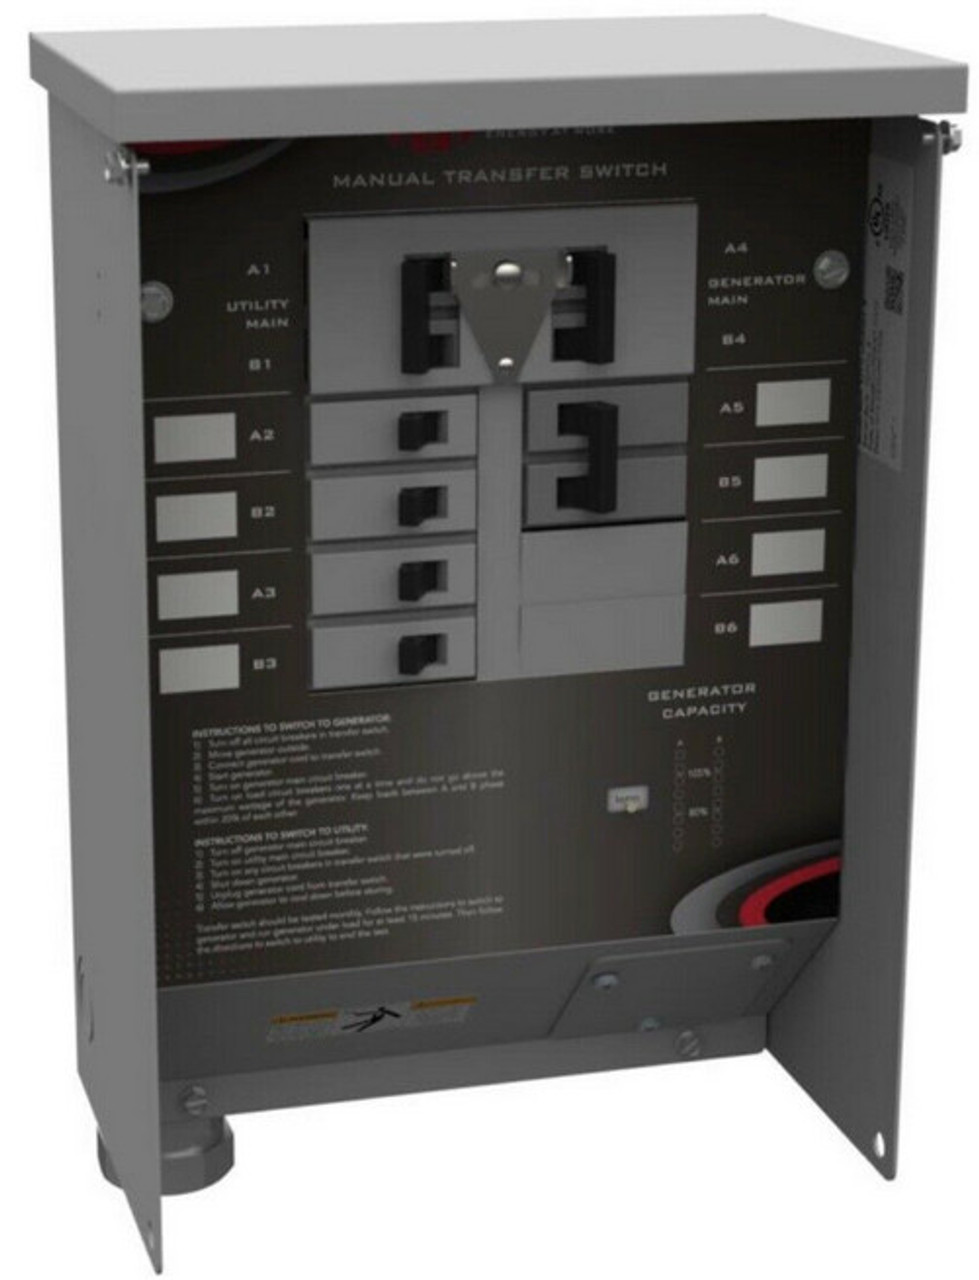 MMTS3014SYSL2C Manual Transfer Switch WITH 10/4 Power Cord